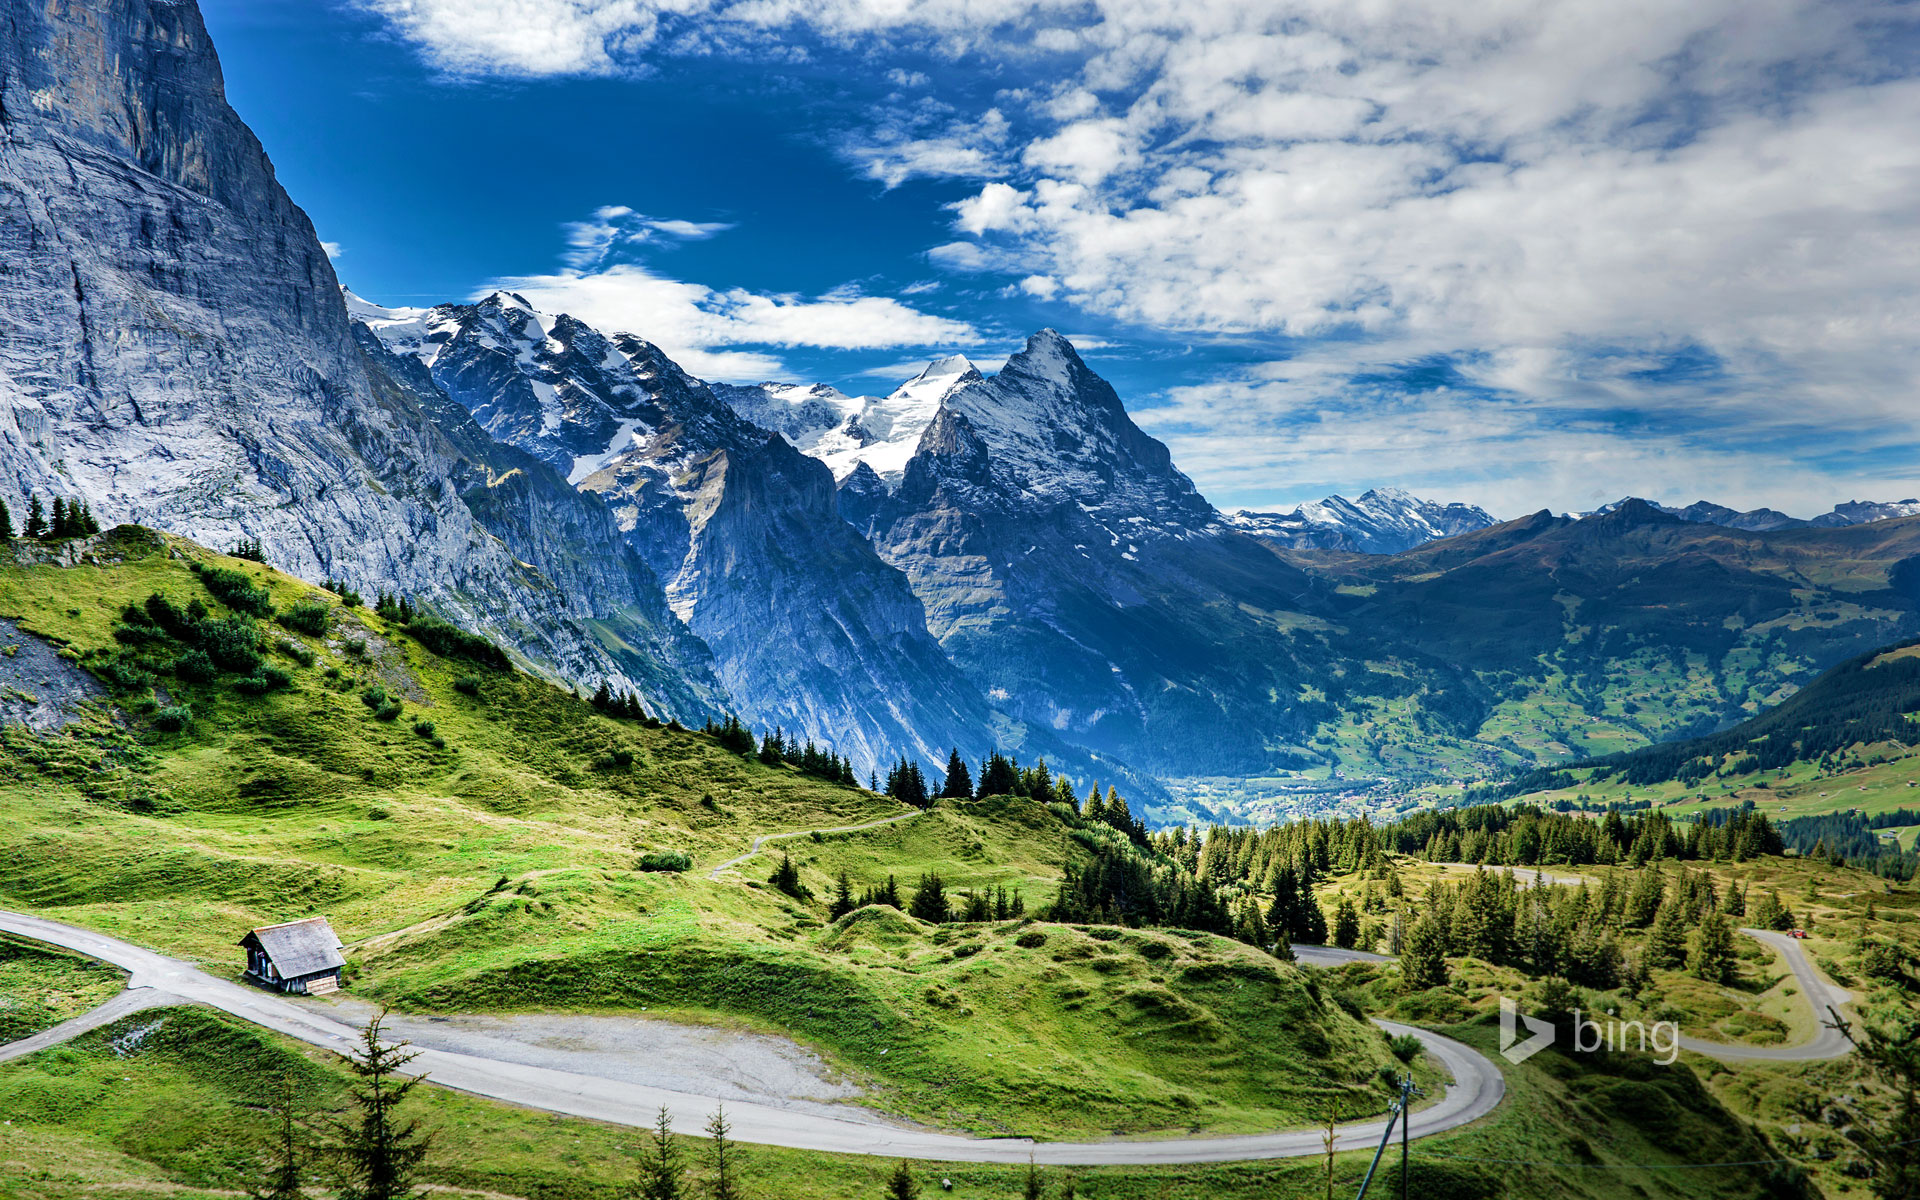 View of the Eiger from the Grosse Scheidegg mountain pass, Switzerland